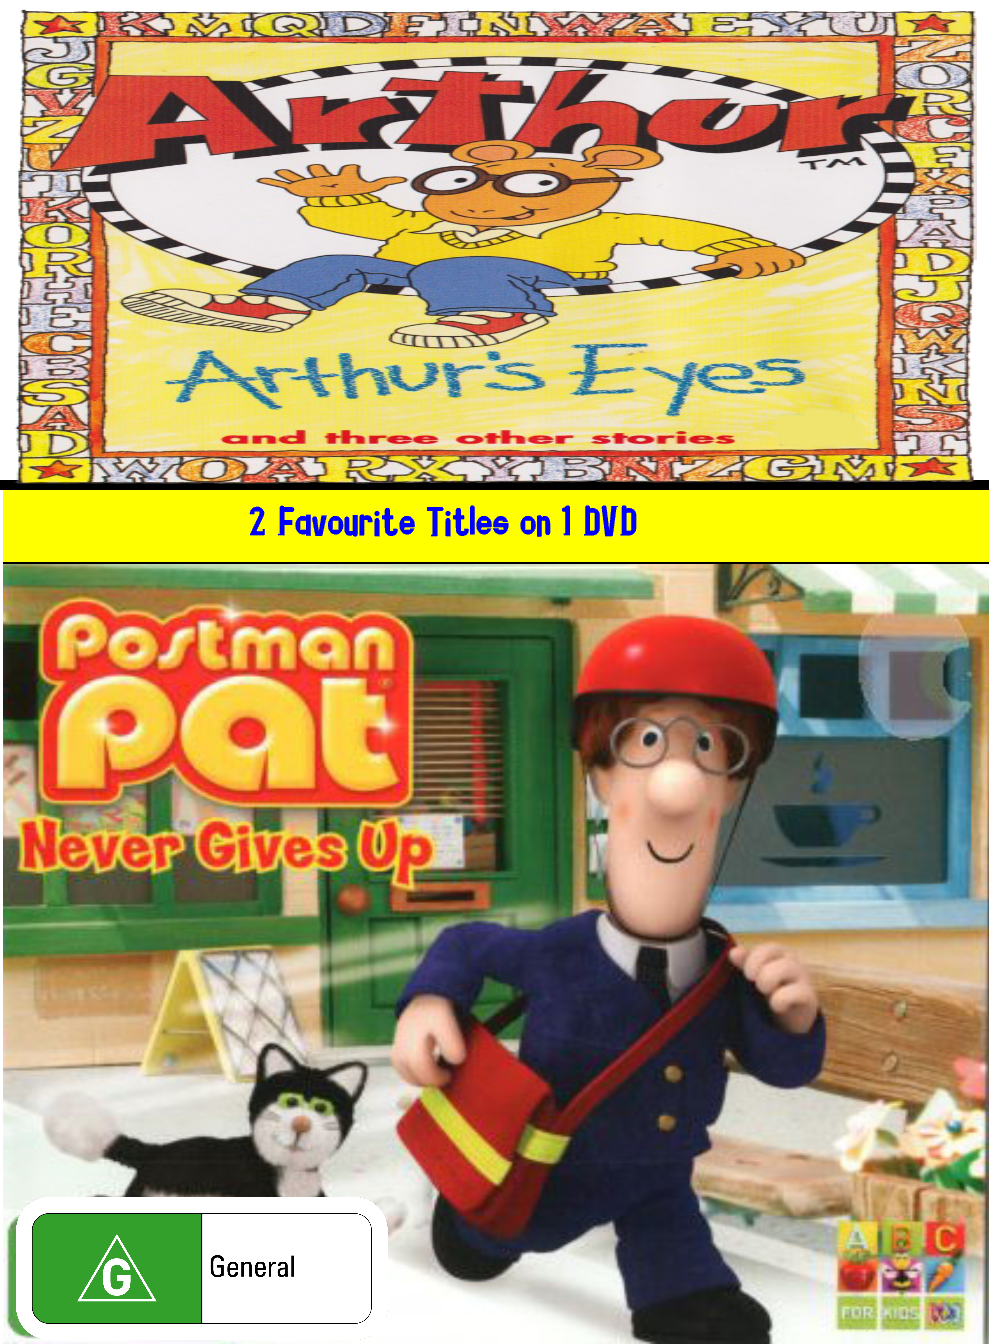 Arthur and Postman Pat: Arthur's Eyes and Never Gives Up